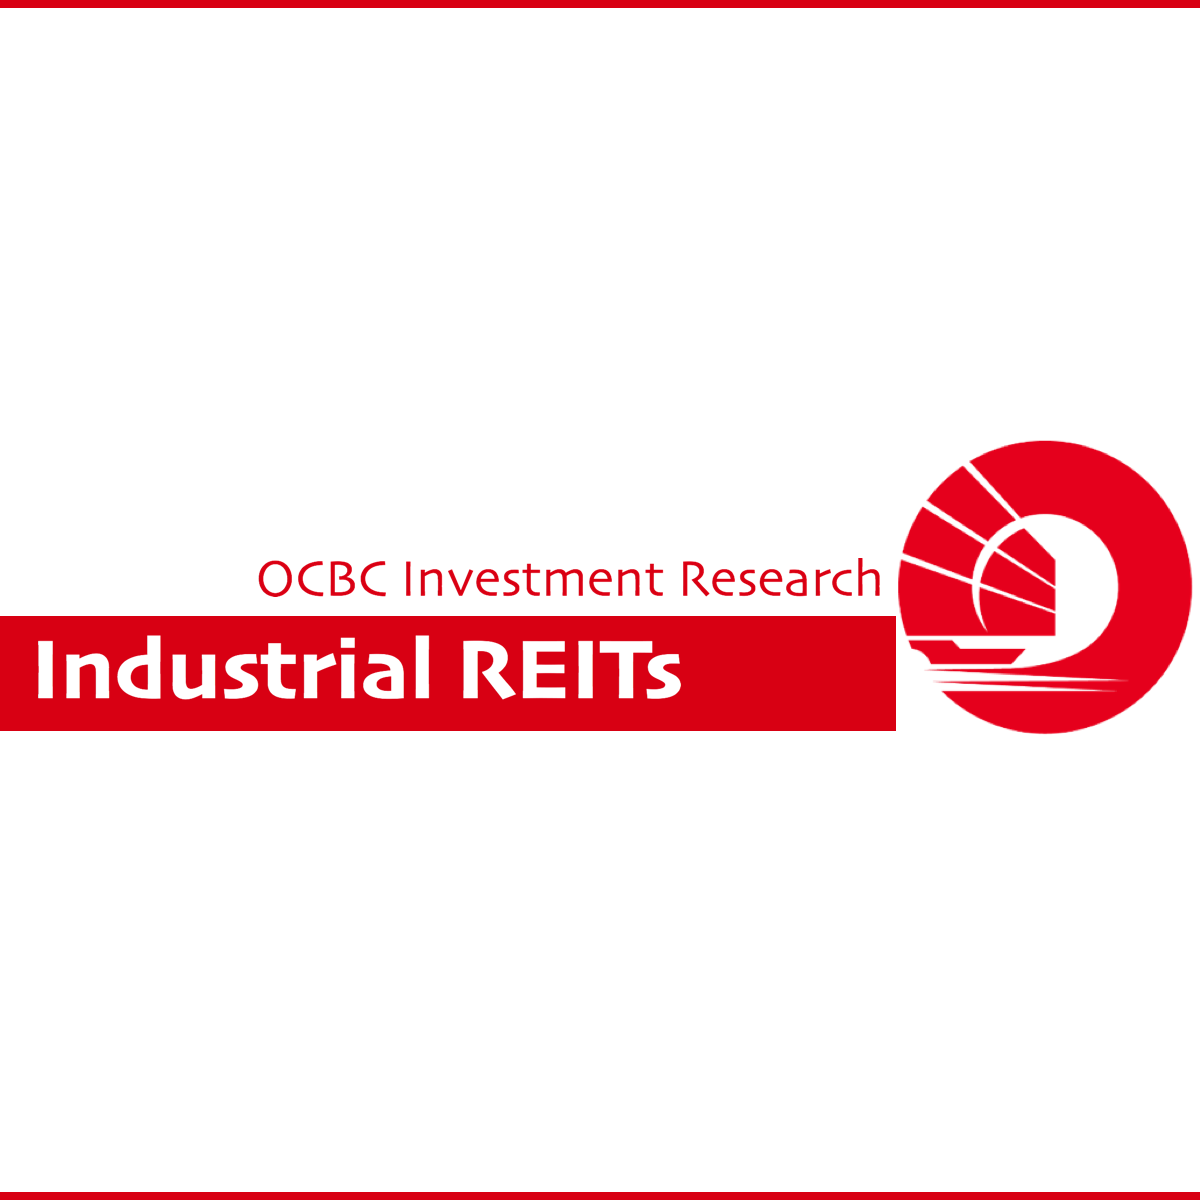 SG Industrial REITs - OCBC Investment 2018-02-12: Focus On A Few